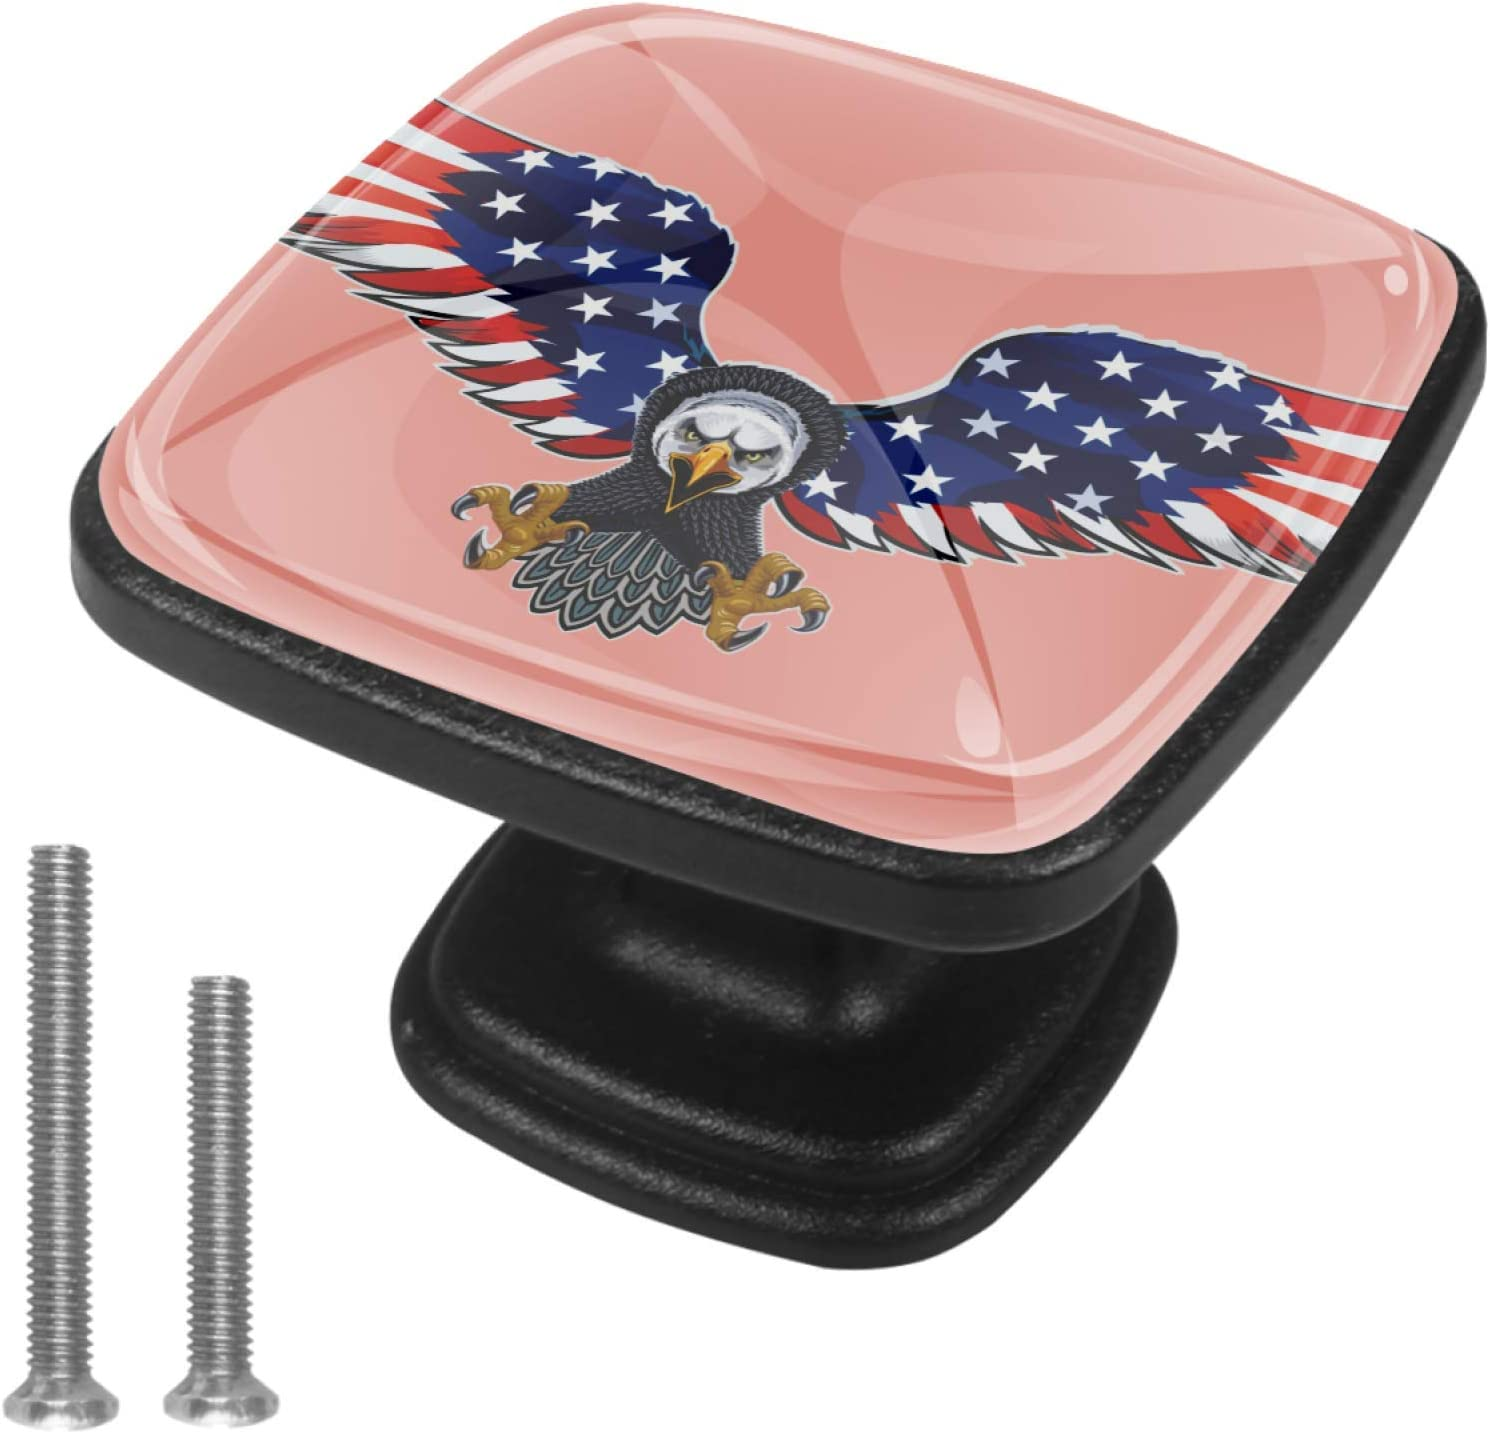 Kitchen Cabinet Knobs - American Eagle and American Flag - 1.18 Inch Round Drawer Handles - 4 Pack of Kitchen Cabinet Hardware